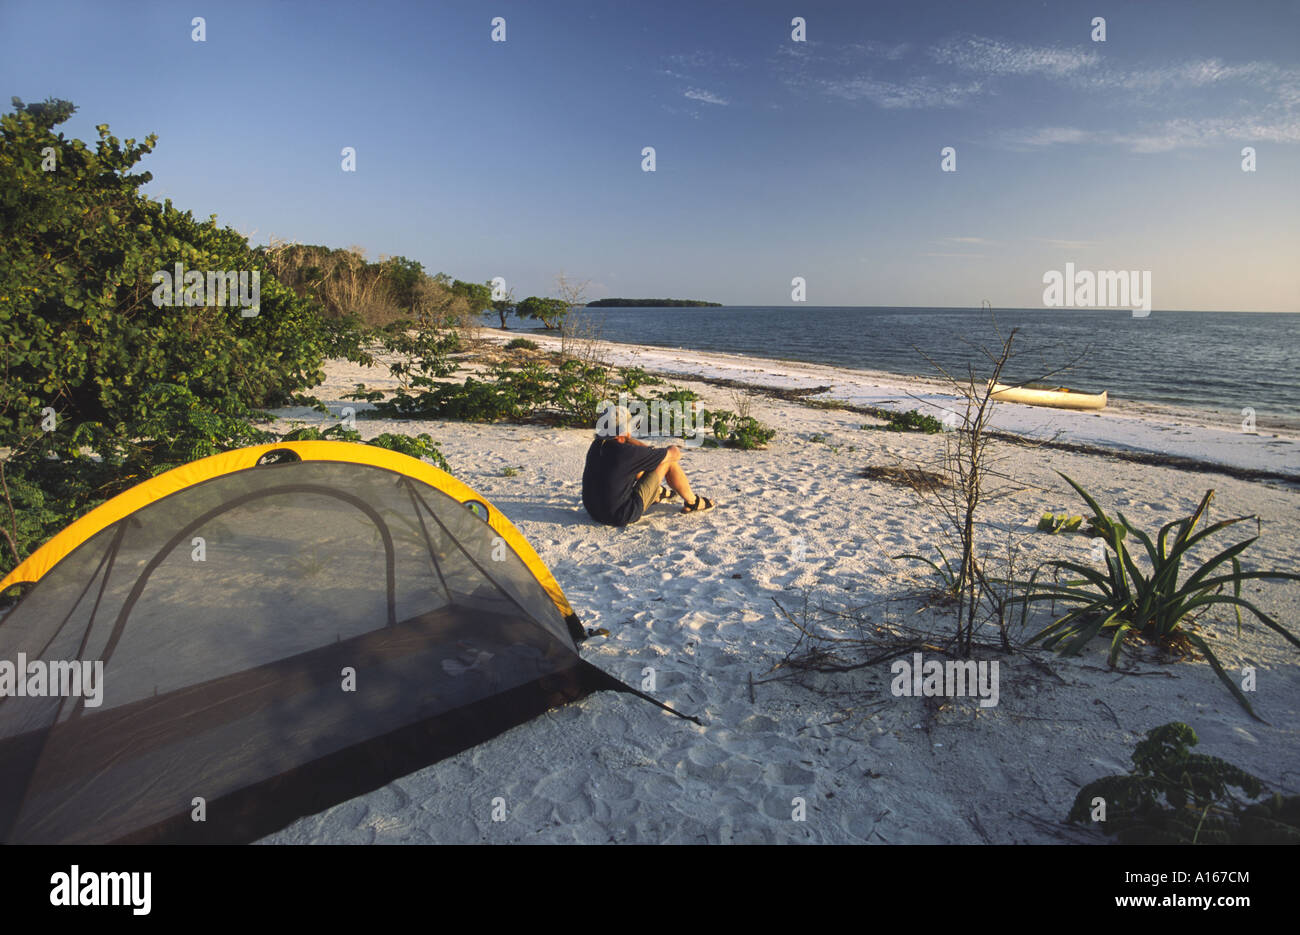 Camping Ten Thousand Islands Florida